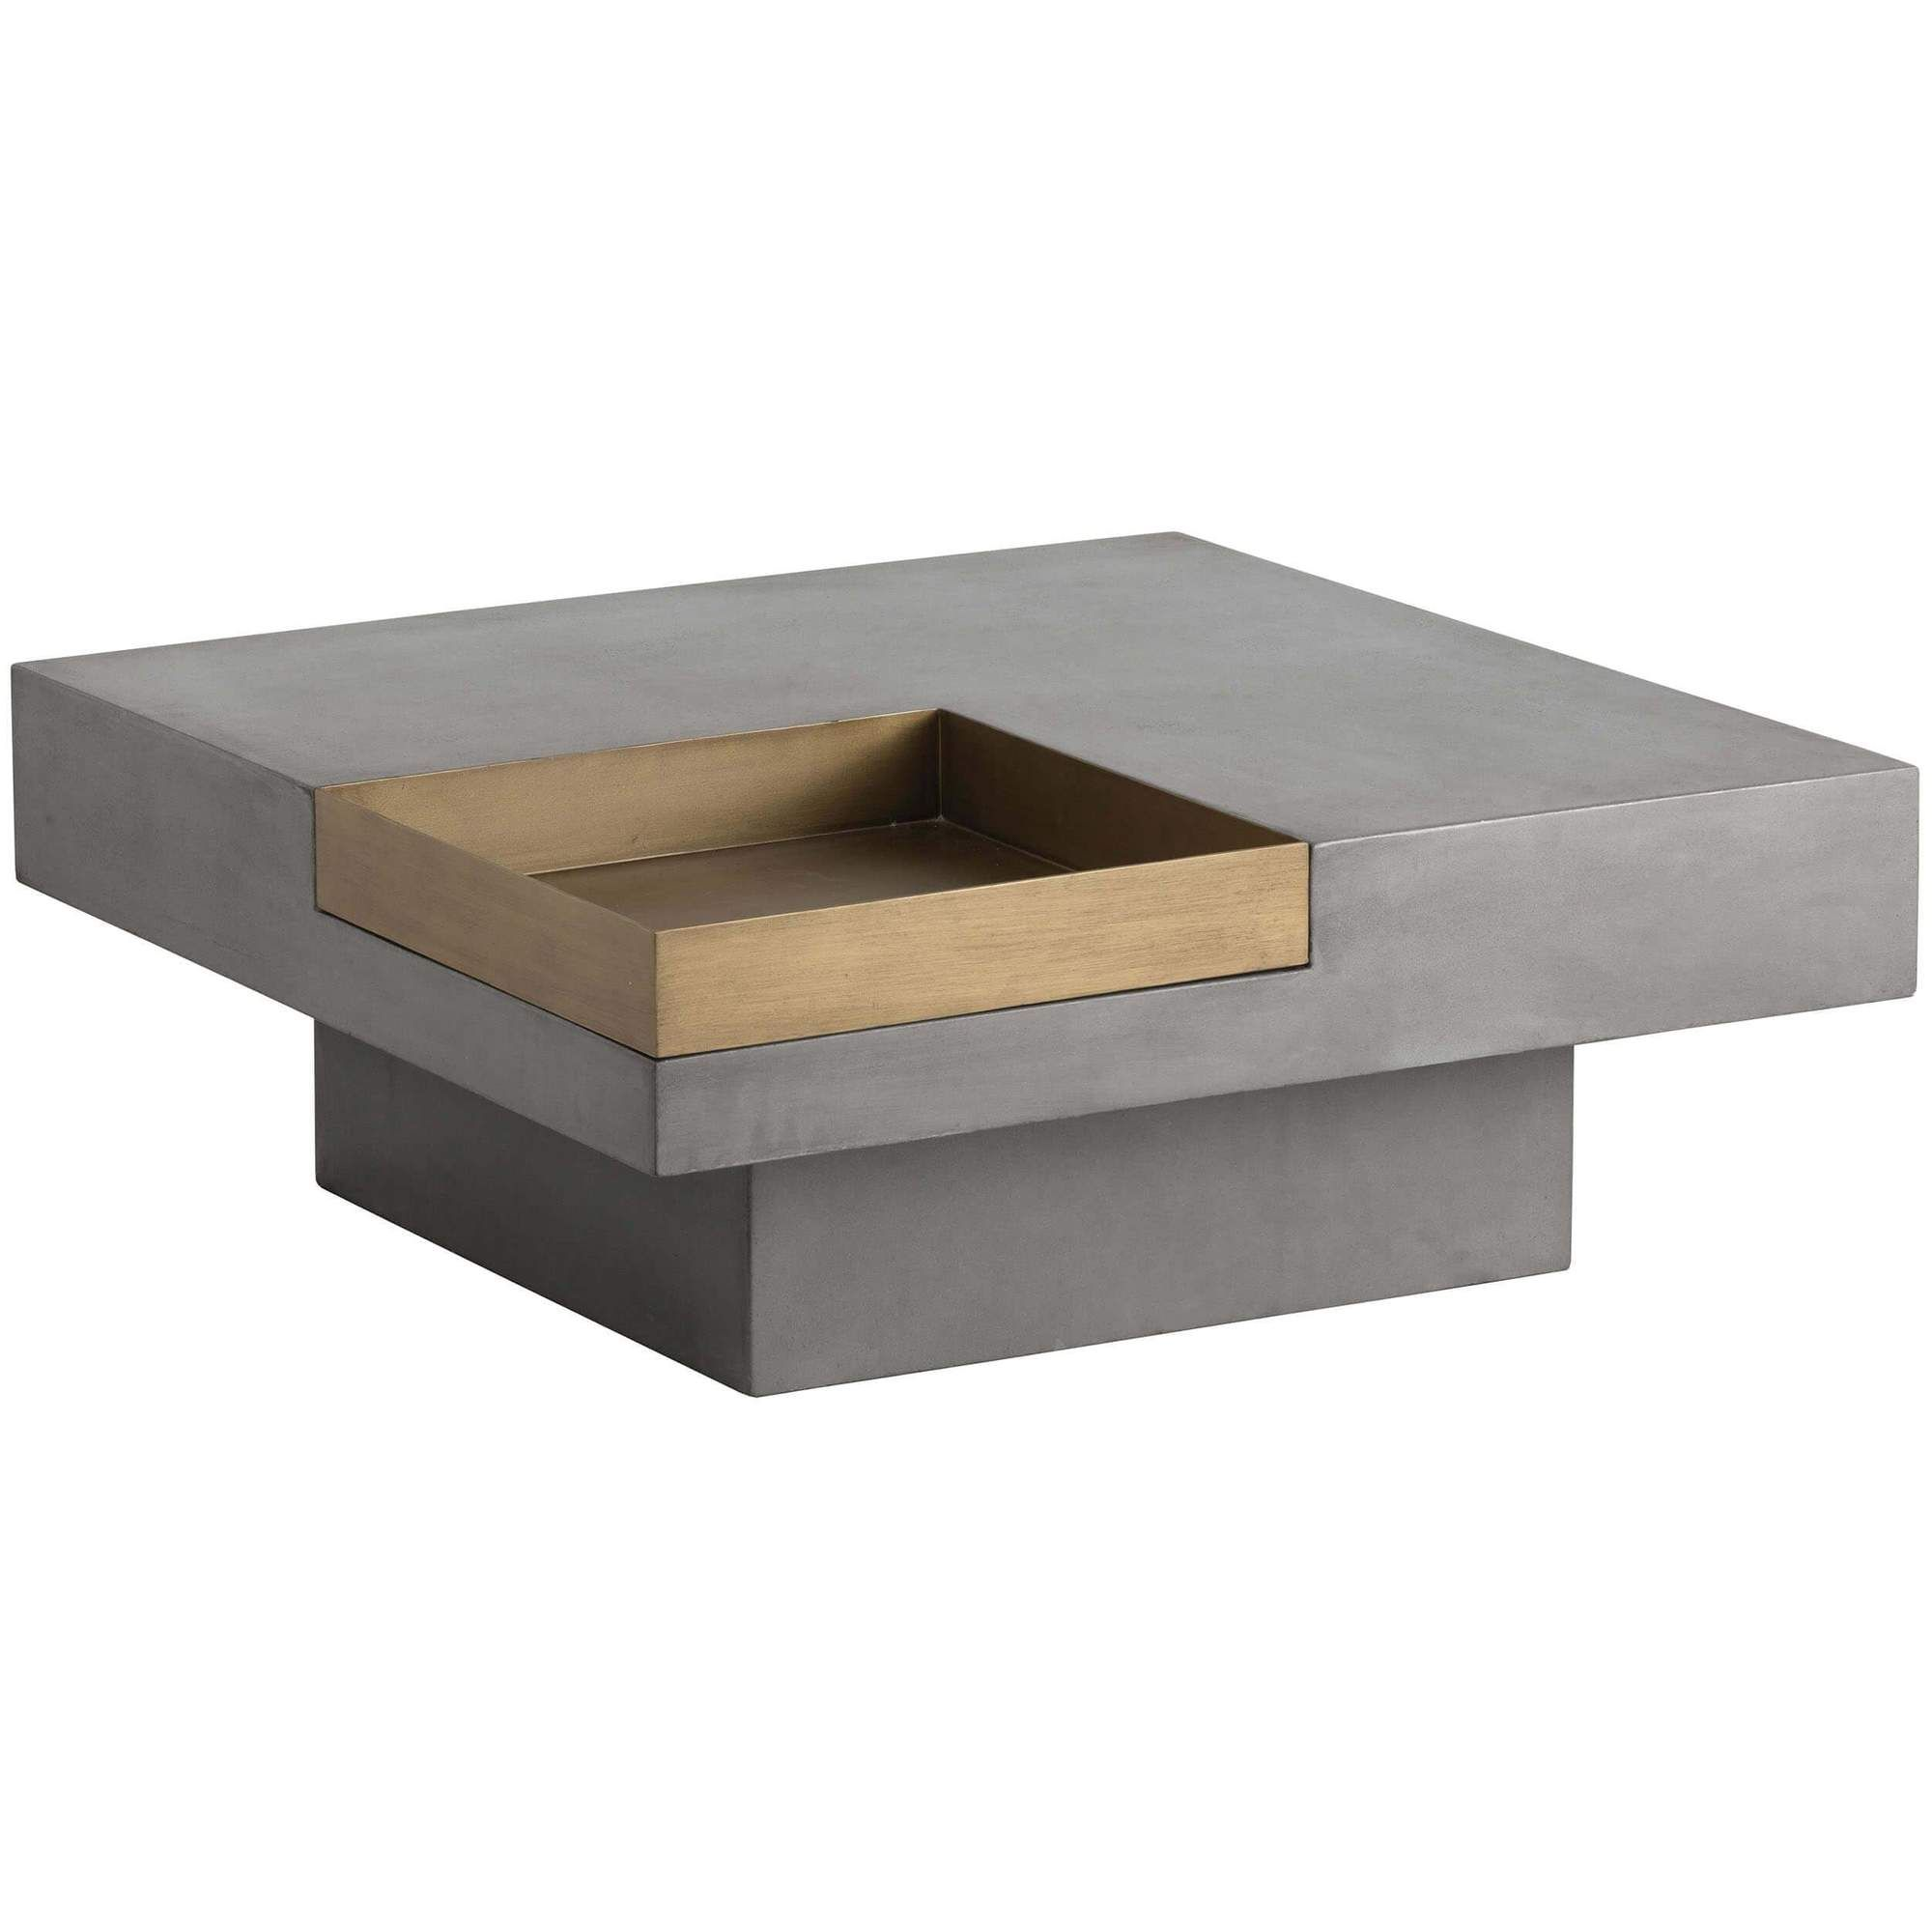 Quill Coffee Table Grey In 2021 Coffee Table Concrete Coffee Table Rectangular Coffee Table [ 2000 x 2000 Pixel ]